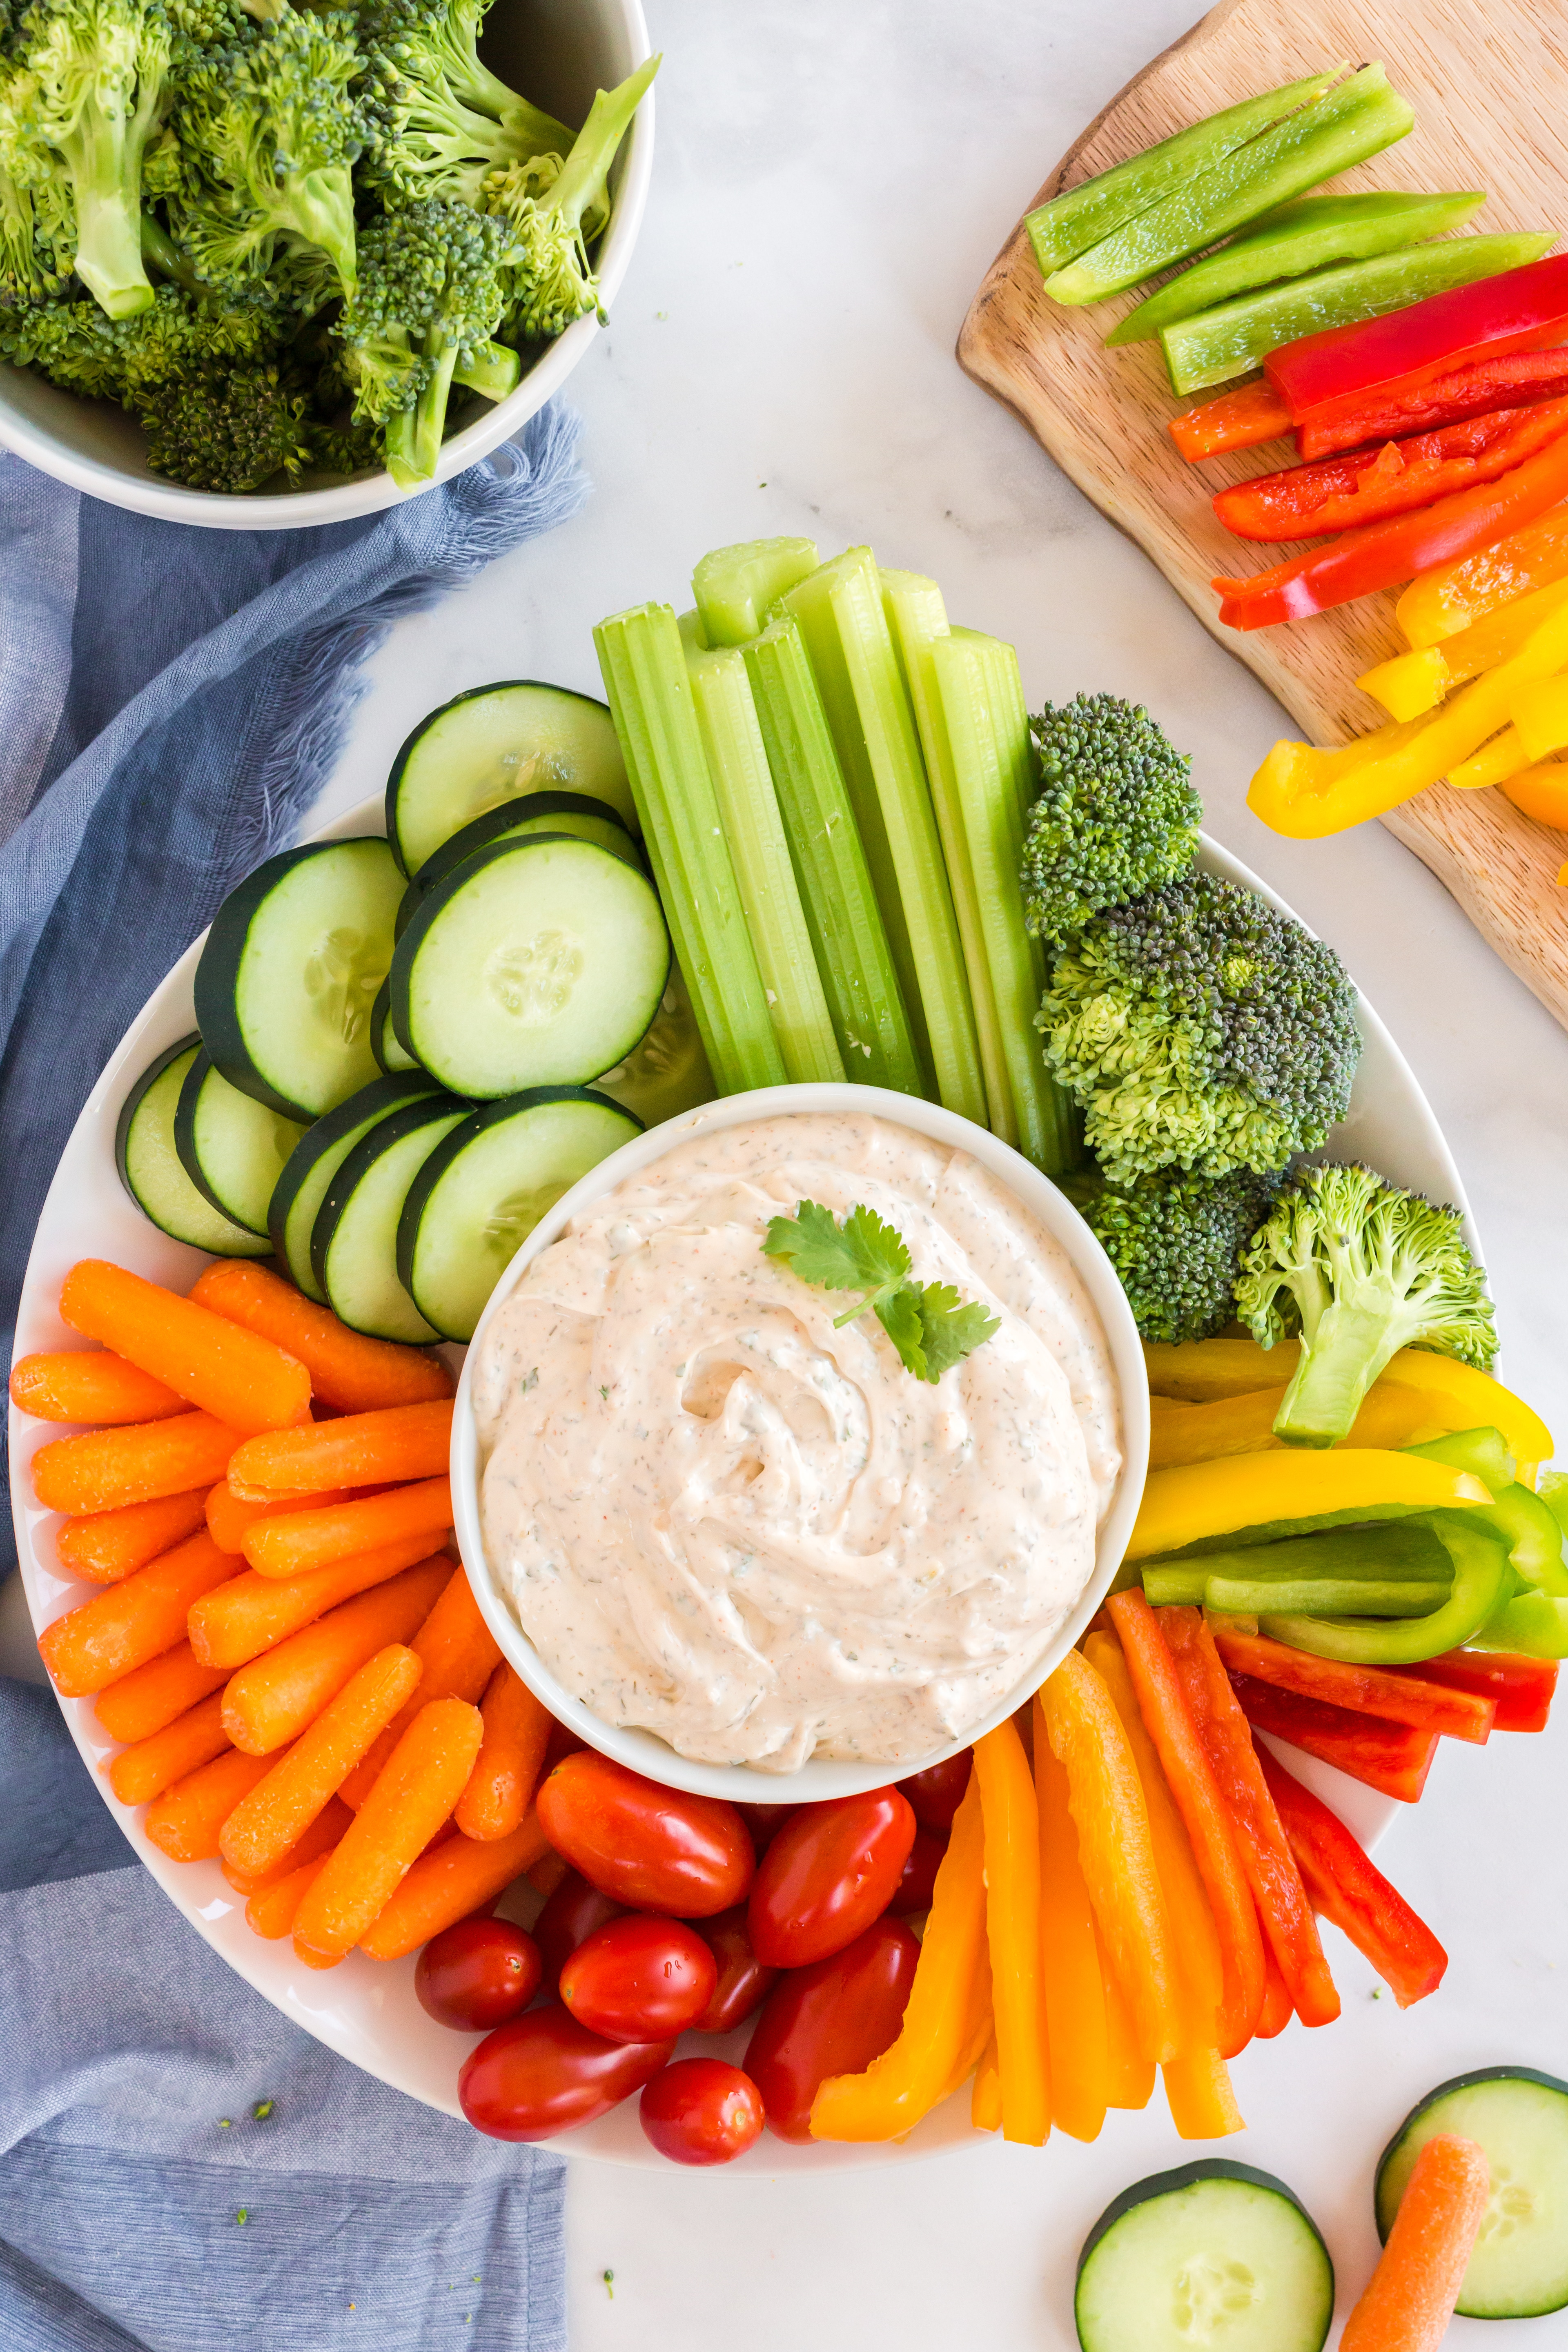 veggie plater with vegetable dip and colorful veggies around